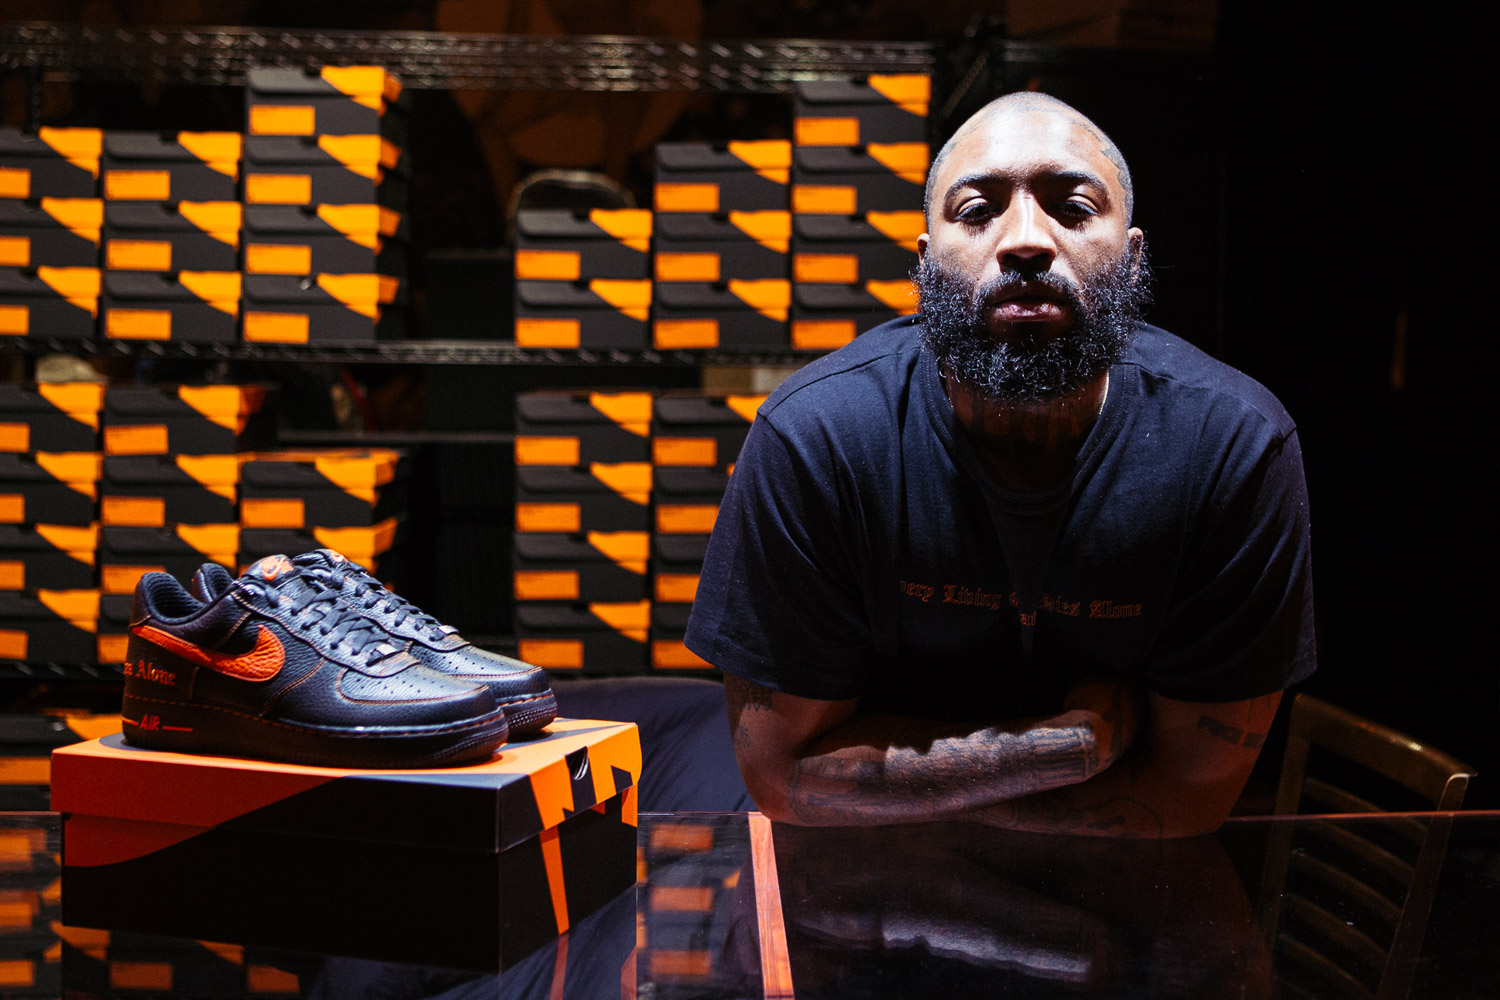 Voici le Nike AF1 x VLONE Harlem pop-up store